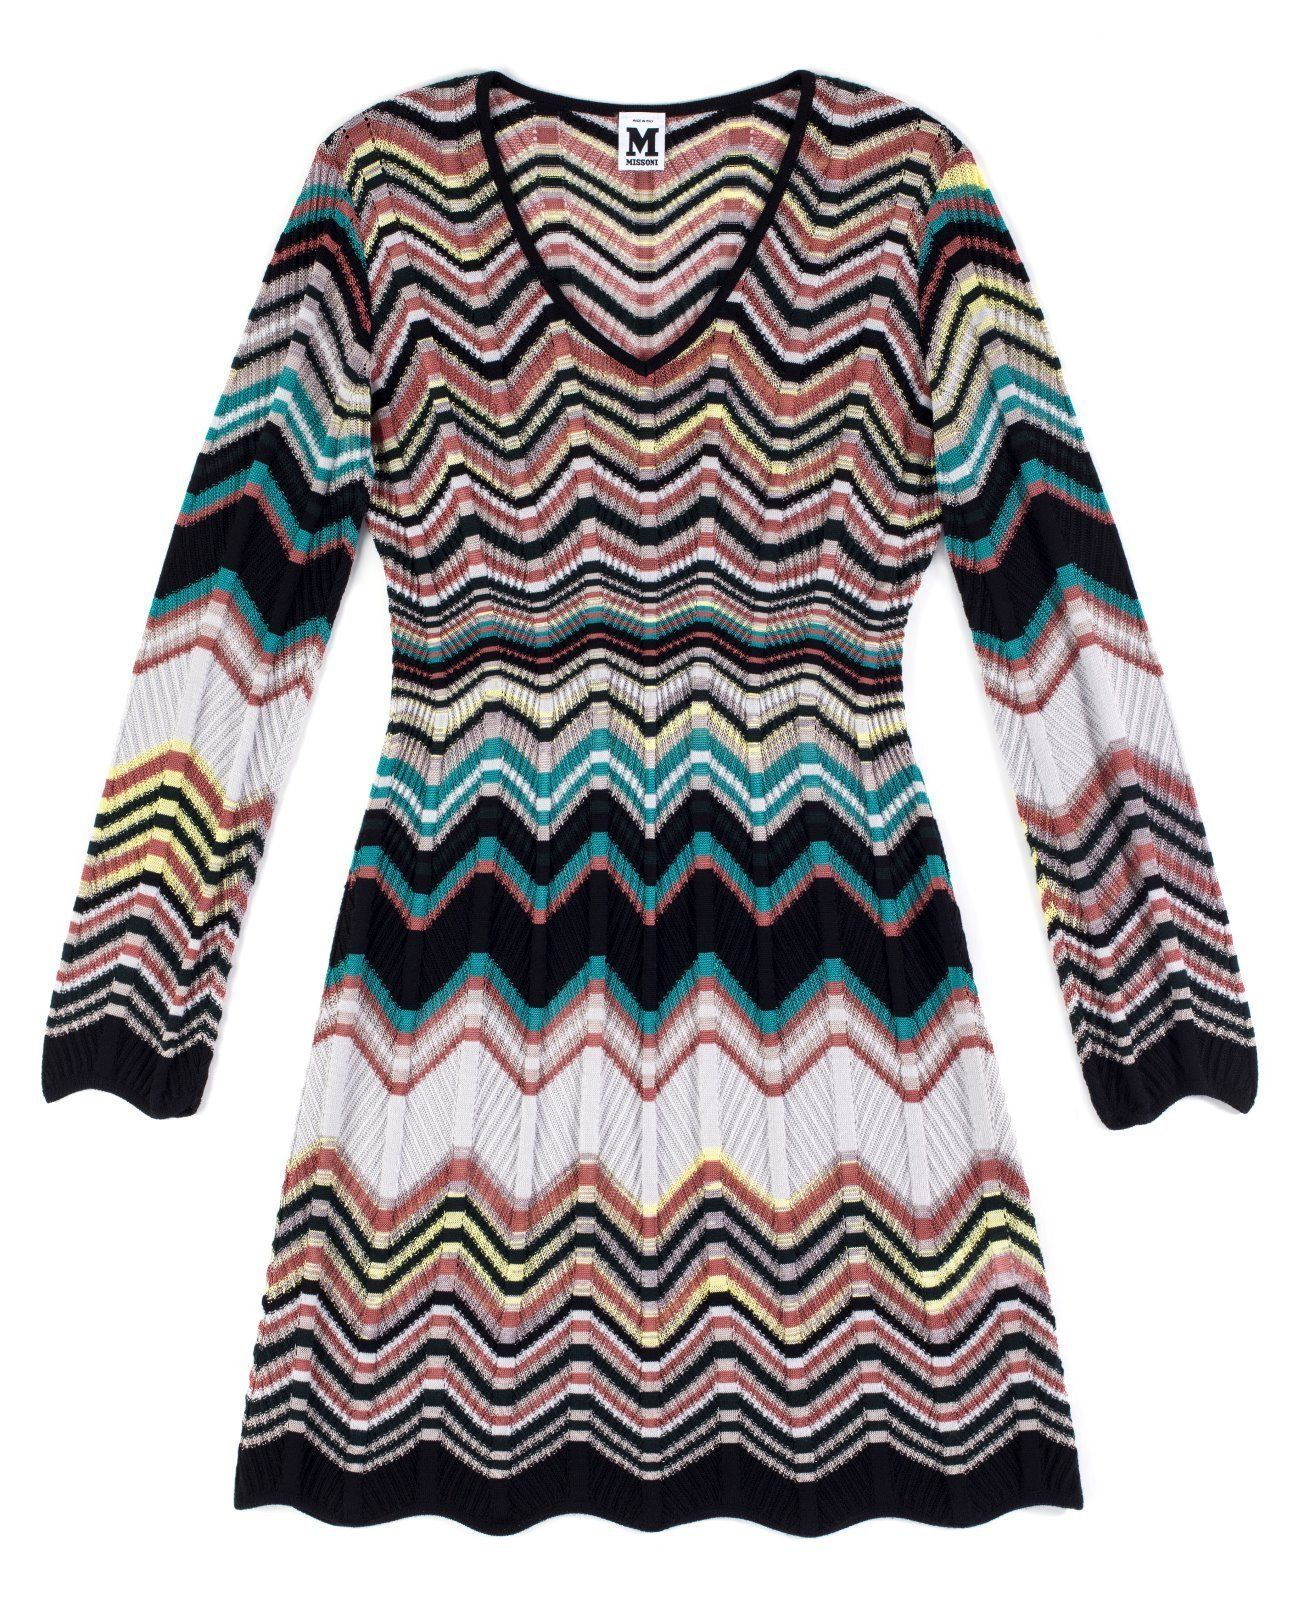 zig-zag knitted dress - Multicolour Missoni